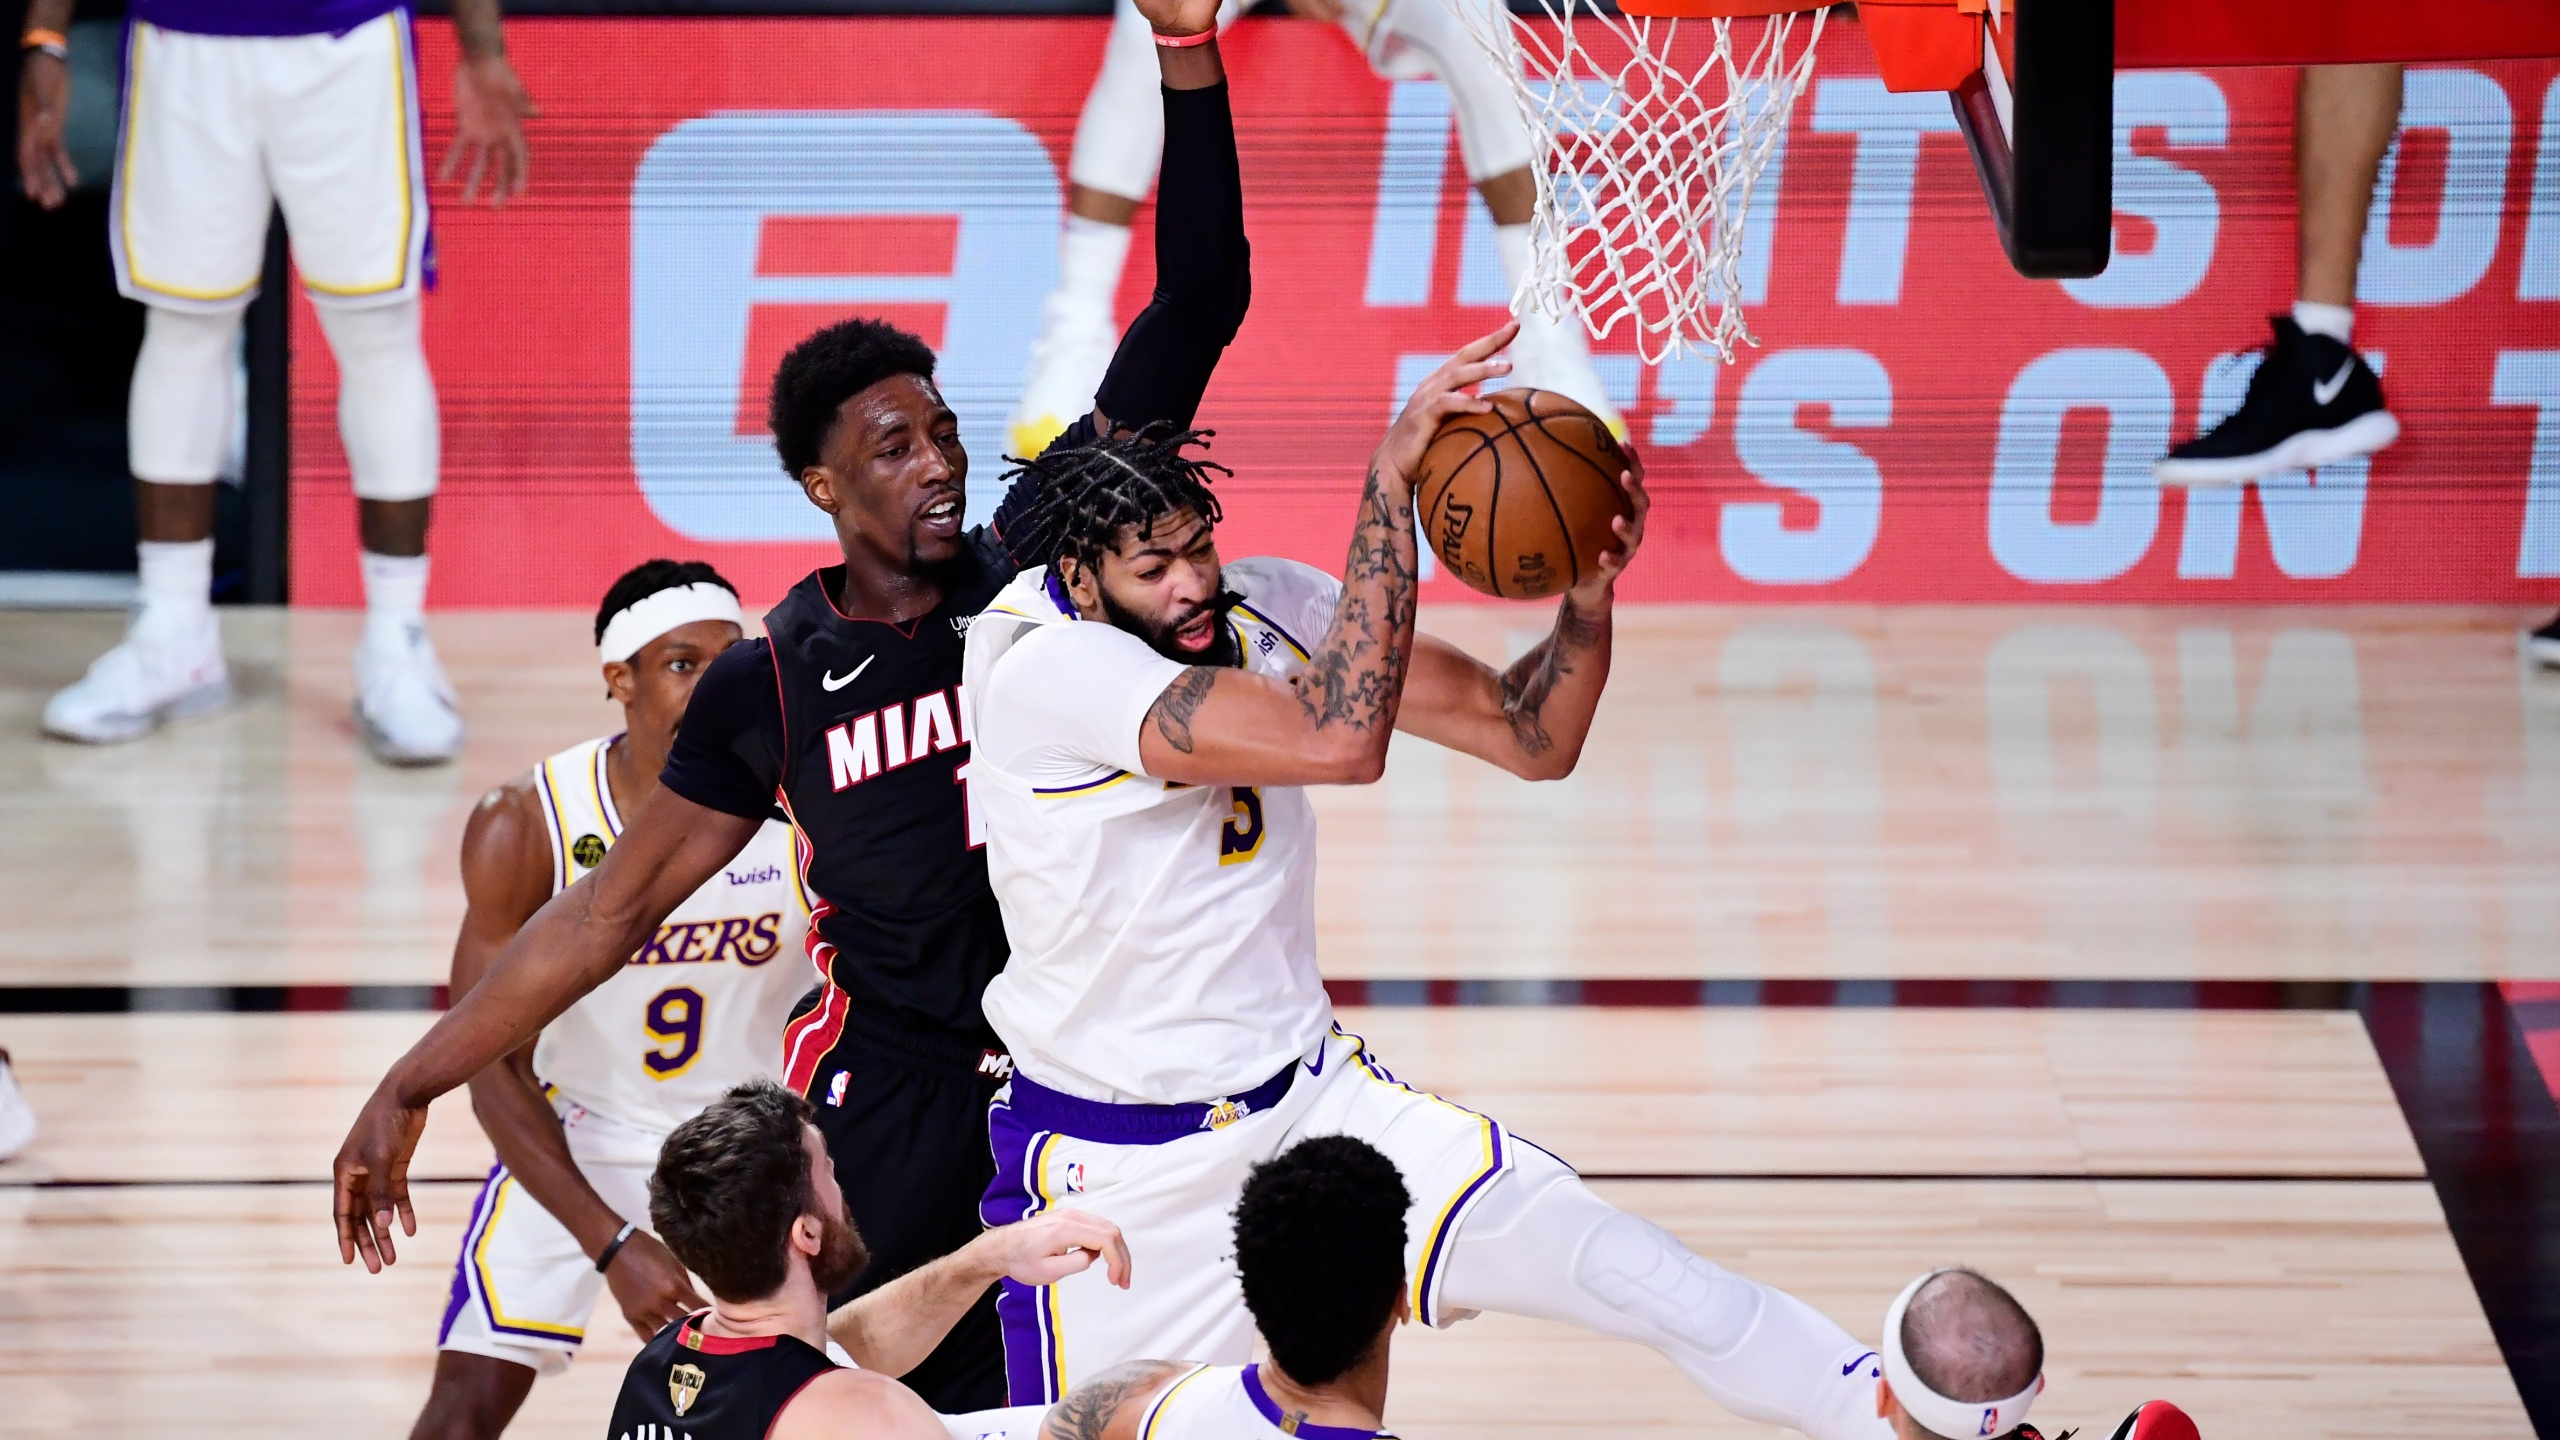 Anthony Davis #3 of the Los Angeles Lakers rebounds the ball against Bam Adebayo #13 of the Miami Heat during the fourth quarter in Game Six of the 2020 NBA Finals at AdventHealth Arena at the ESPN Wide World Of Sports Complex on Oct. 11, 2020 in Lake Buena Vista, Florida. (Douglas P. DeFelice/Getty Images)